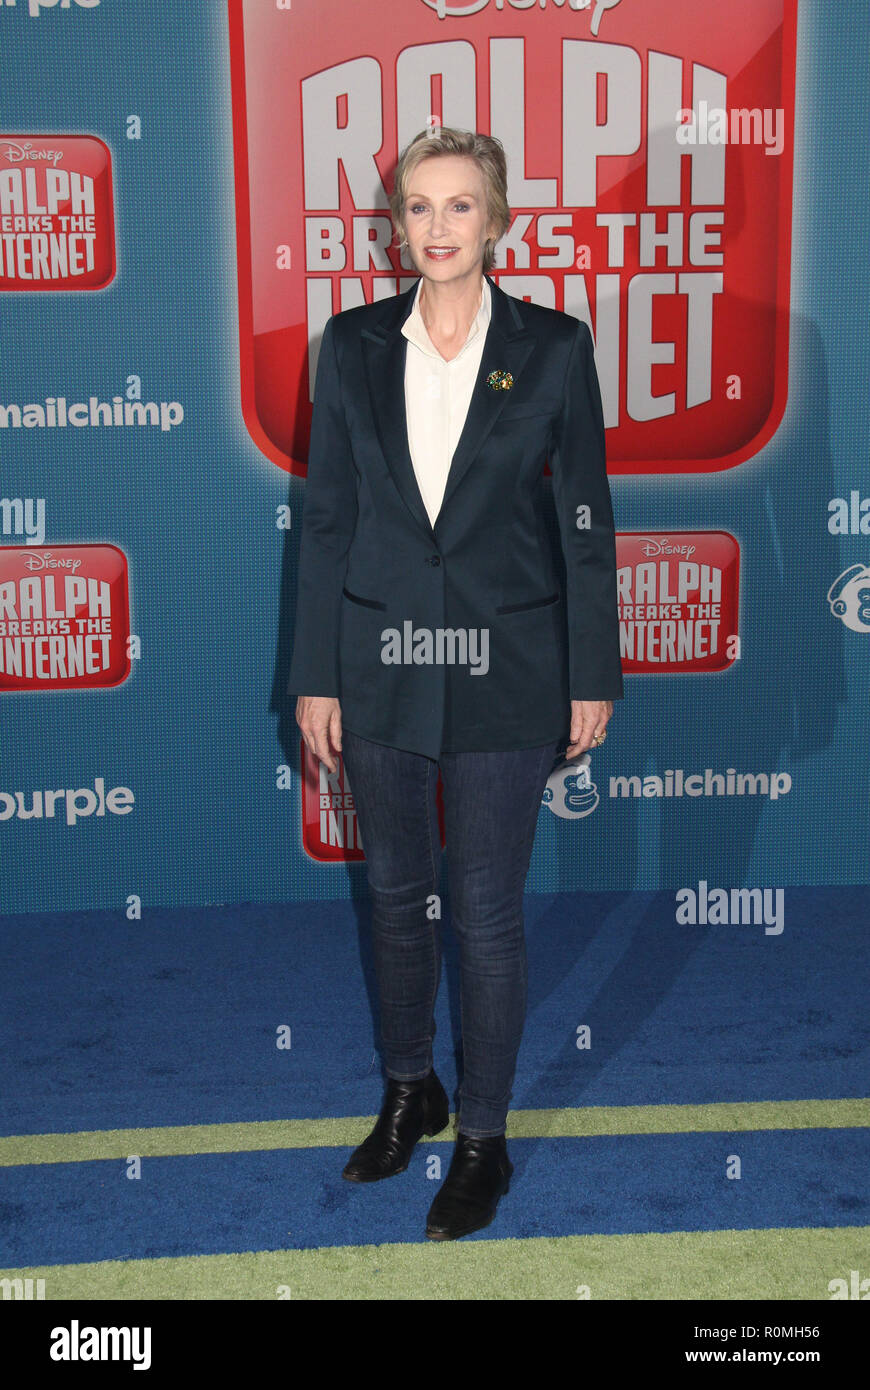 Los Angeles, USA. 5th Nov 2018. Jane Lynch  11/05/2018 The World Premiere of 'Ralph Breaks the Internet' held at El Capitan Theatre in Los Angeles, CA Photo by Hiro Katoh / HNW / PictureLux Credit: PictureLux / The Hollywood Archive/Alamy Live News - Stock Image